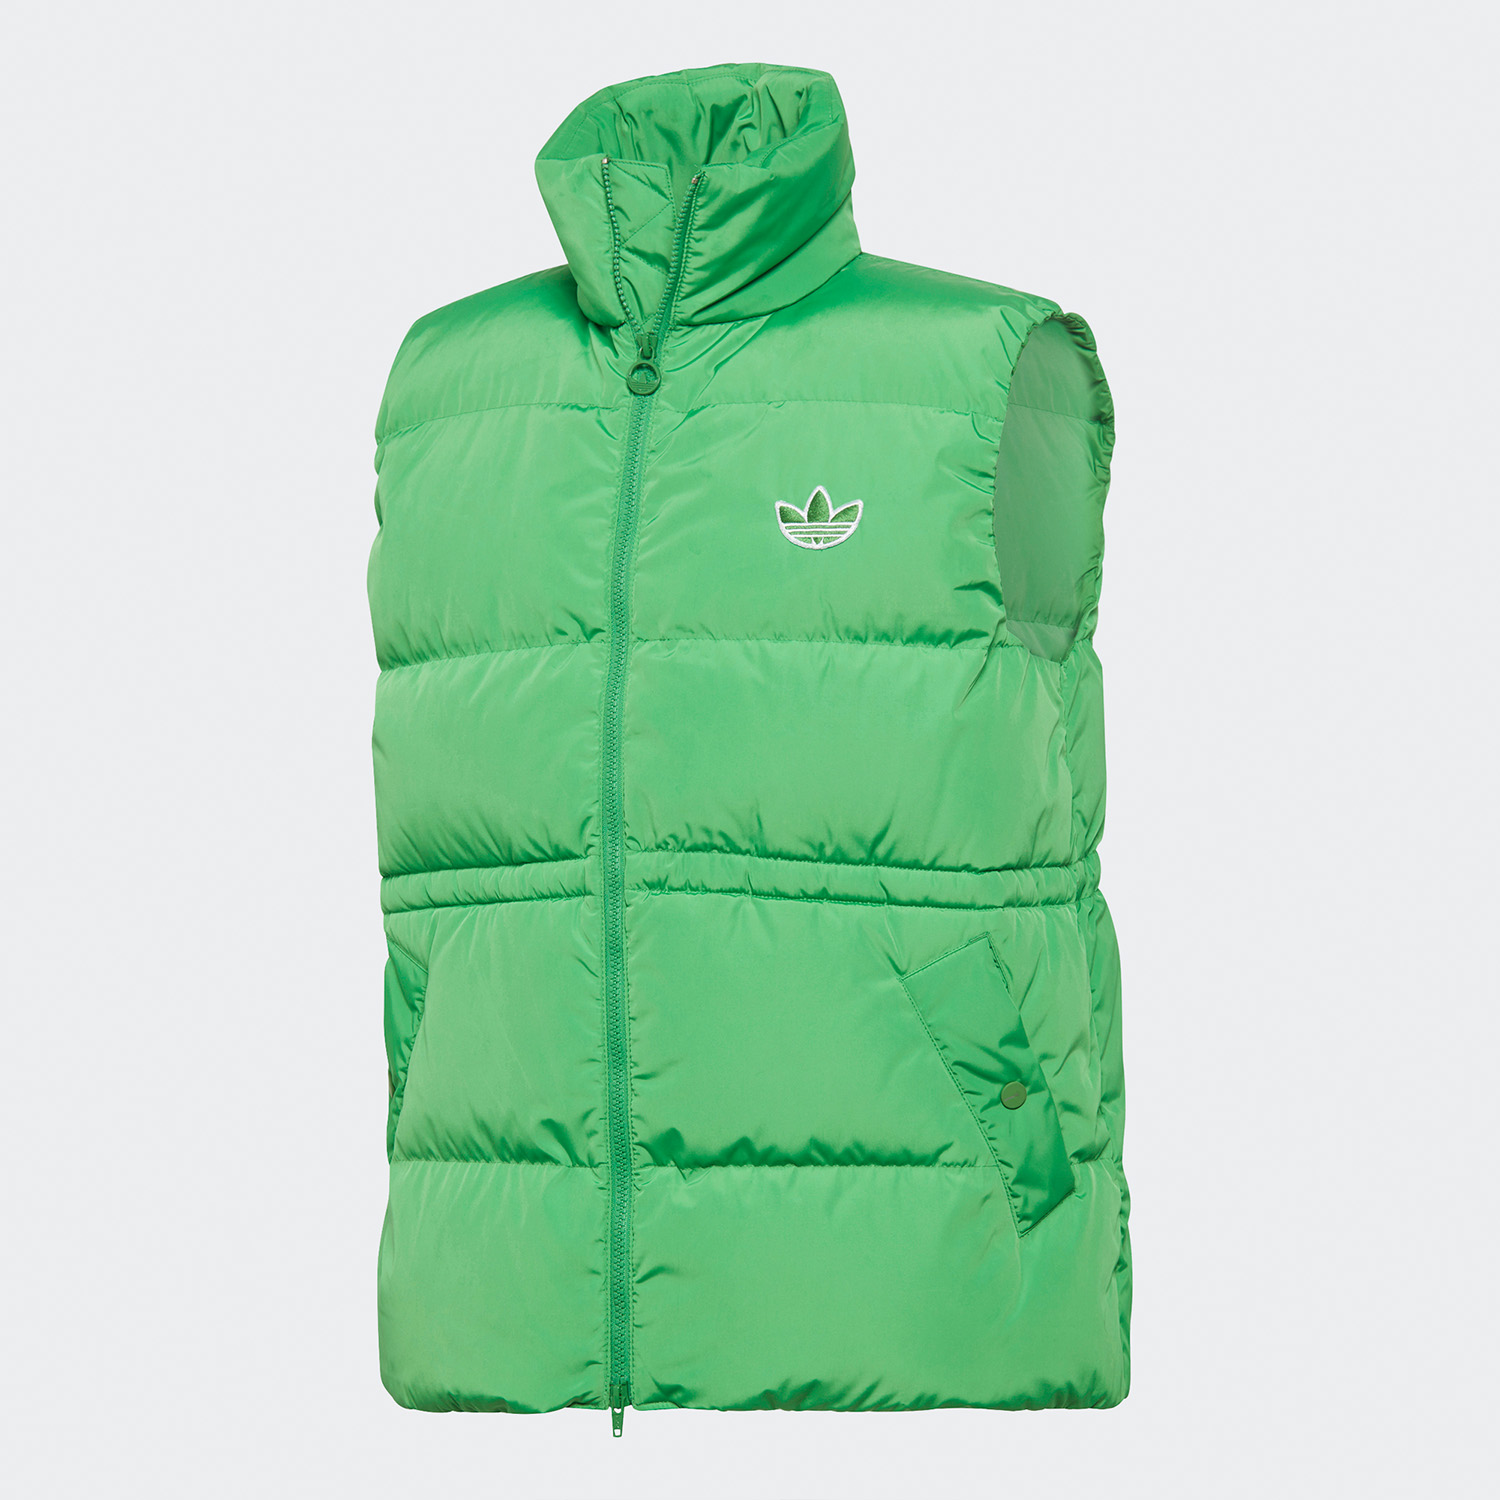 Original Adidas Womens Down Vest GD2521 Green Puffer Down Winter Coat Vest